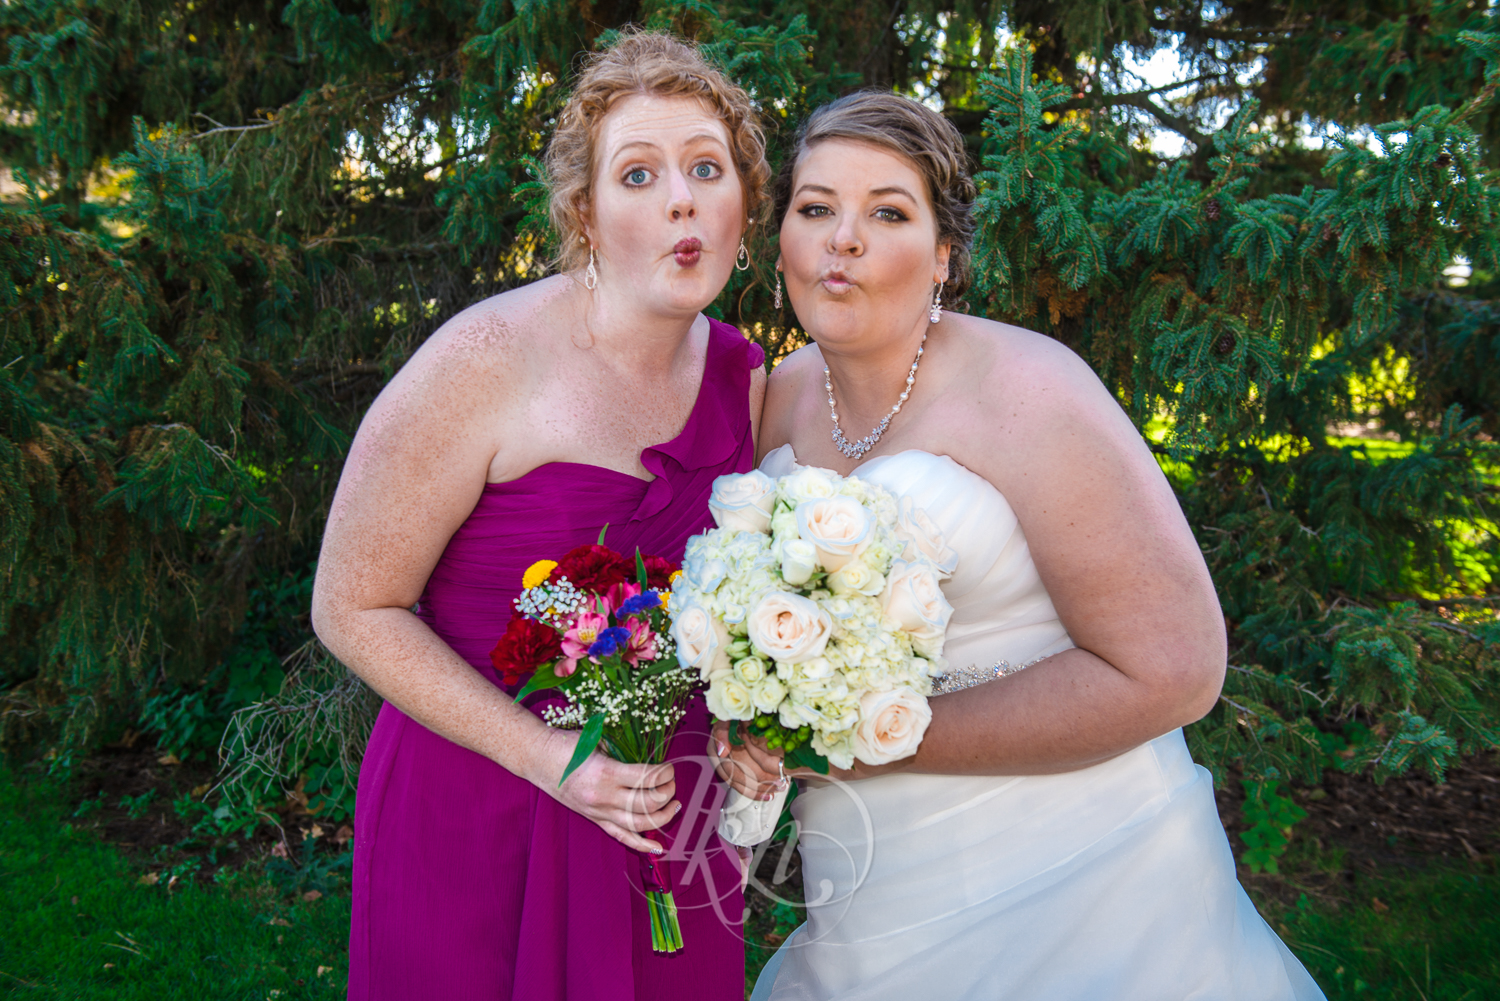 Woodbury Wedding Photography - Amber & Tristan - RKH Images-20